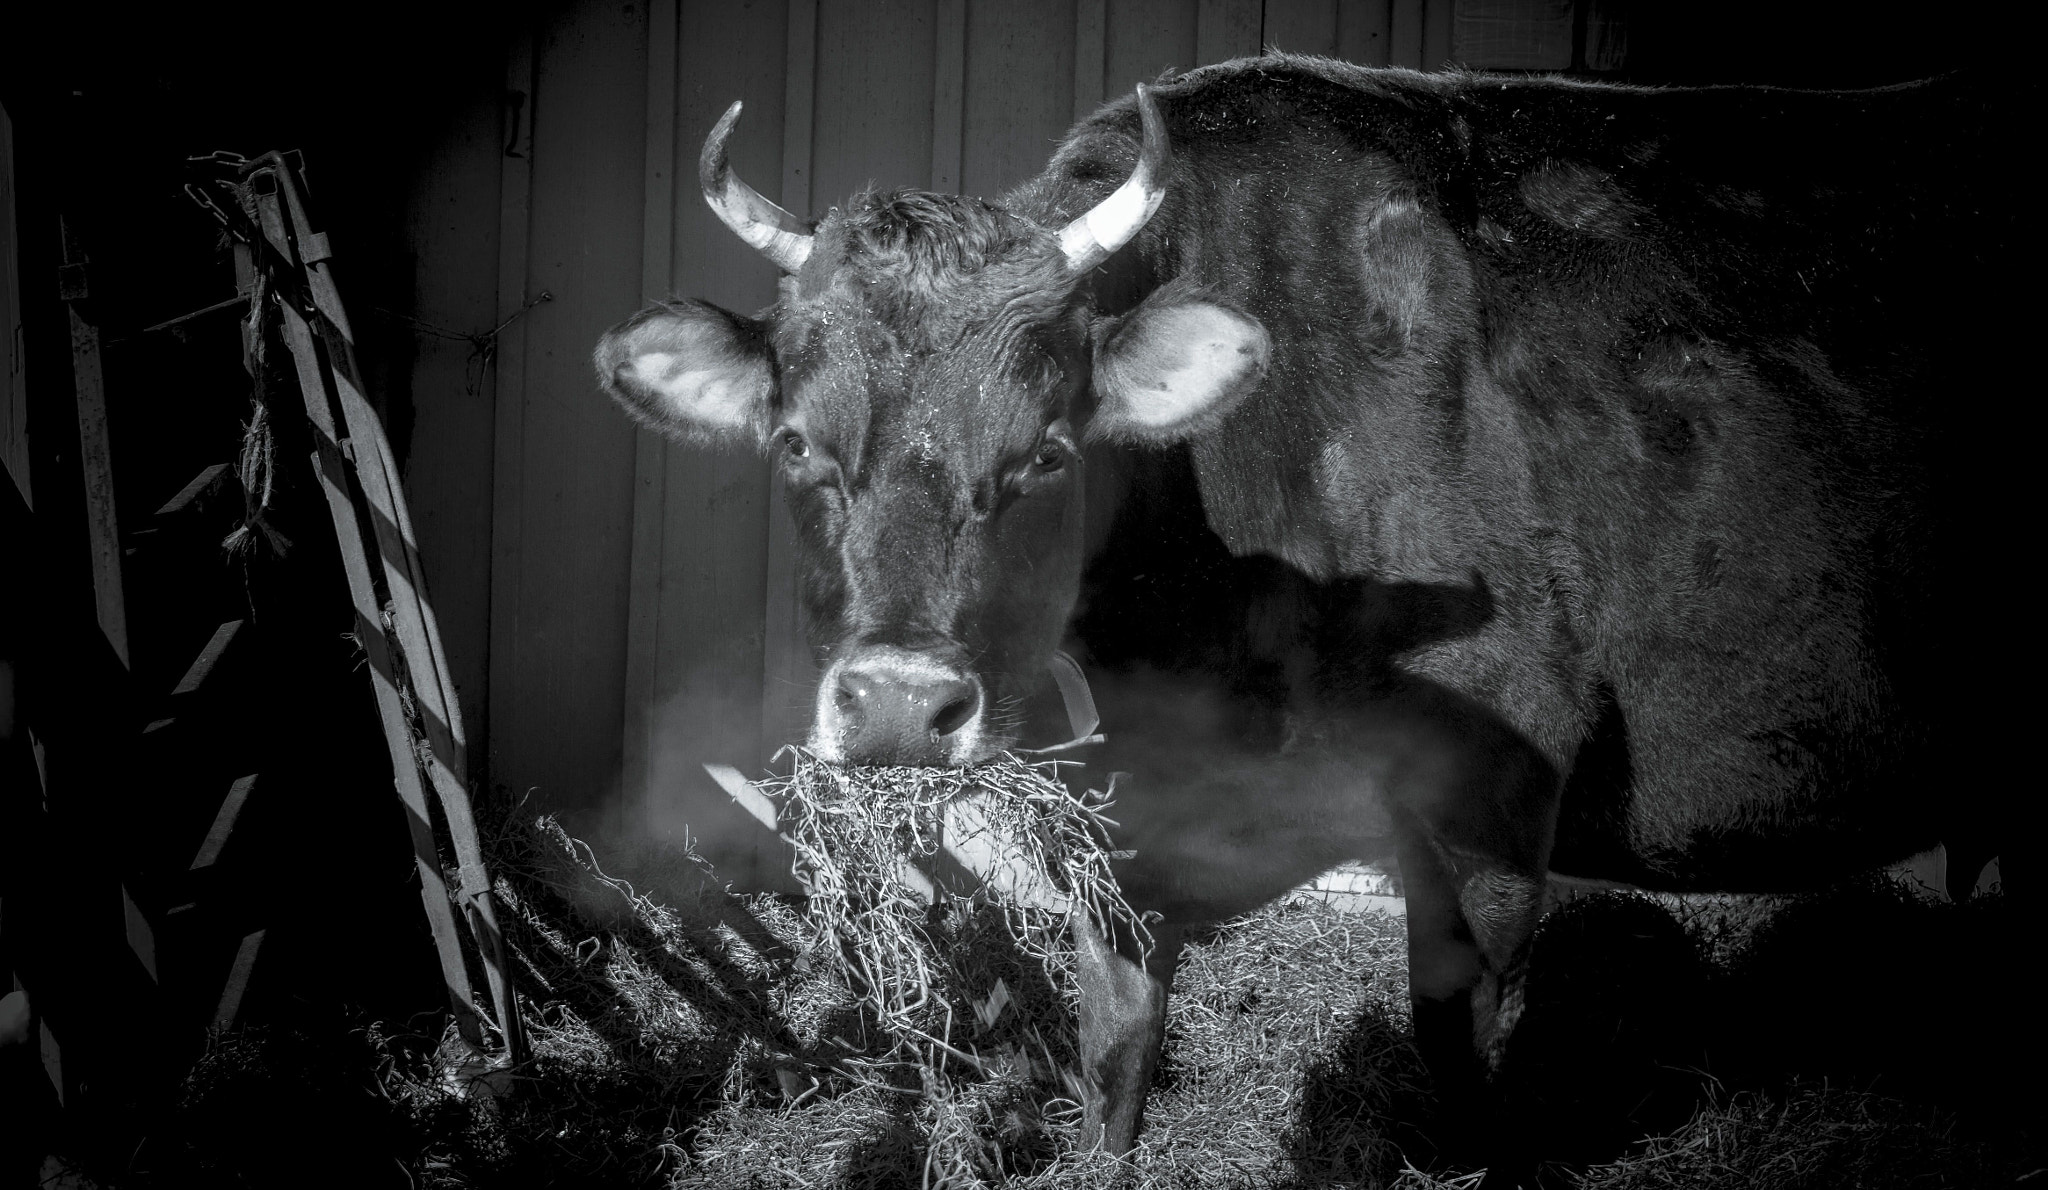 Photograph A Bull & His Oats by Laura Lynch on 500px